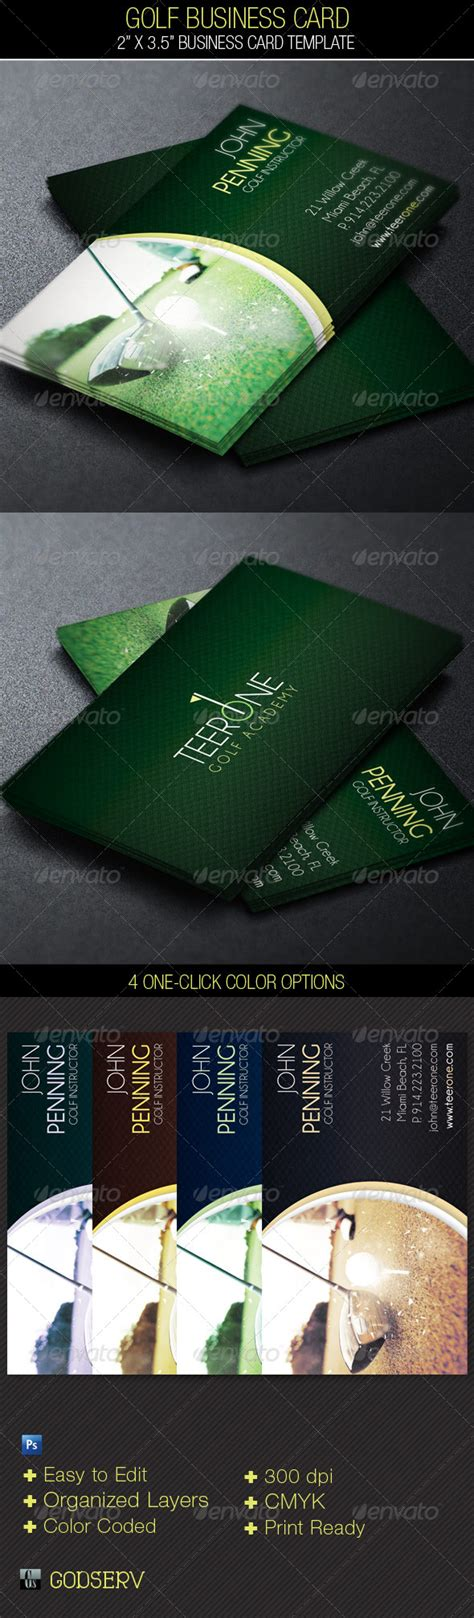 golf business card templates free golf business card template graphicriver